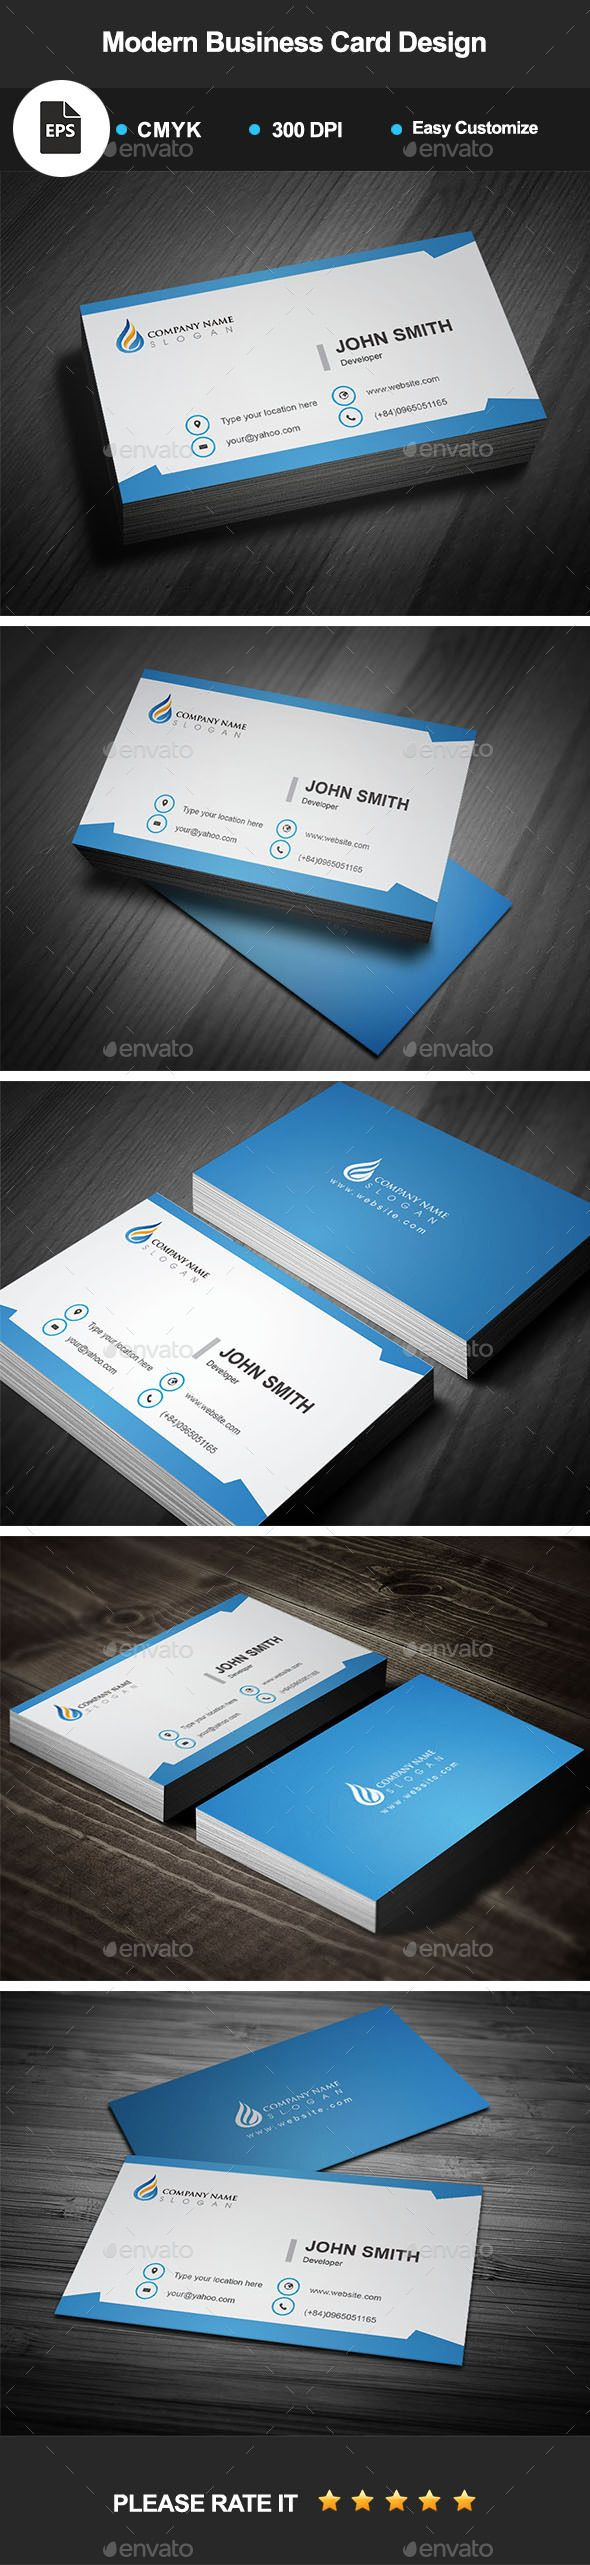 The 25+ best Modern business cards ideas on Pinterest | Free ...